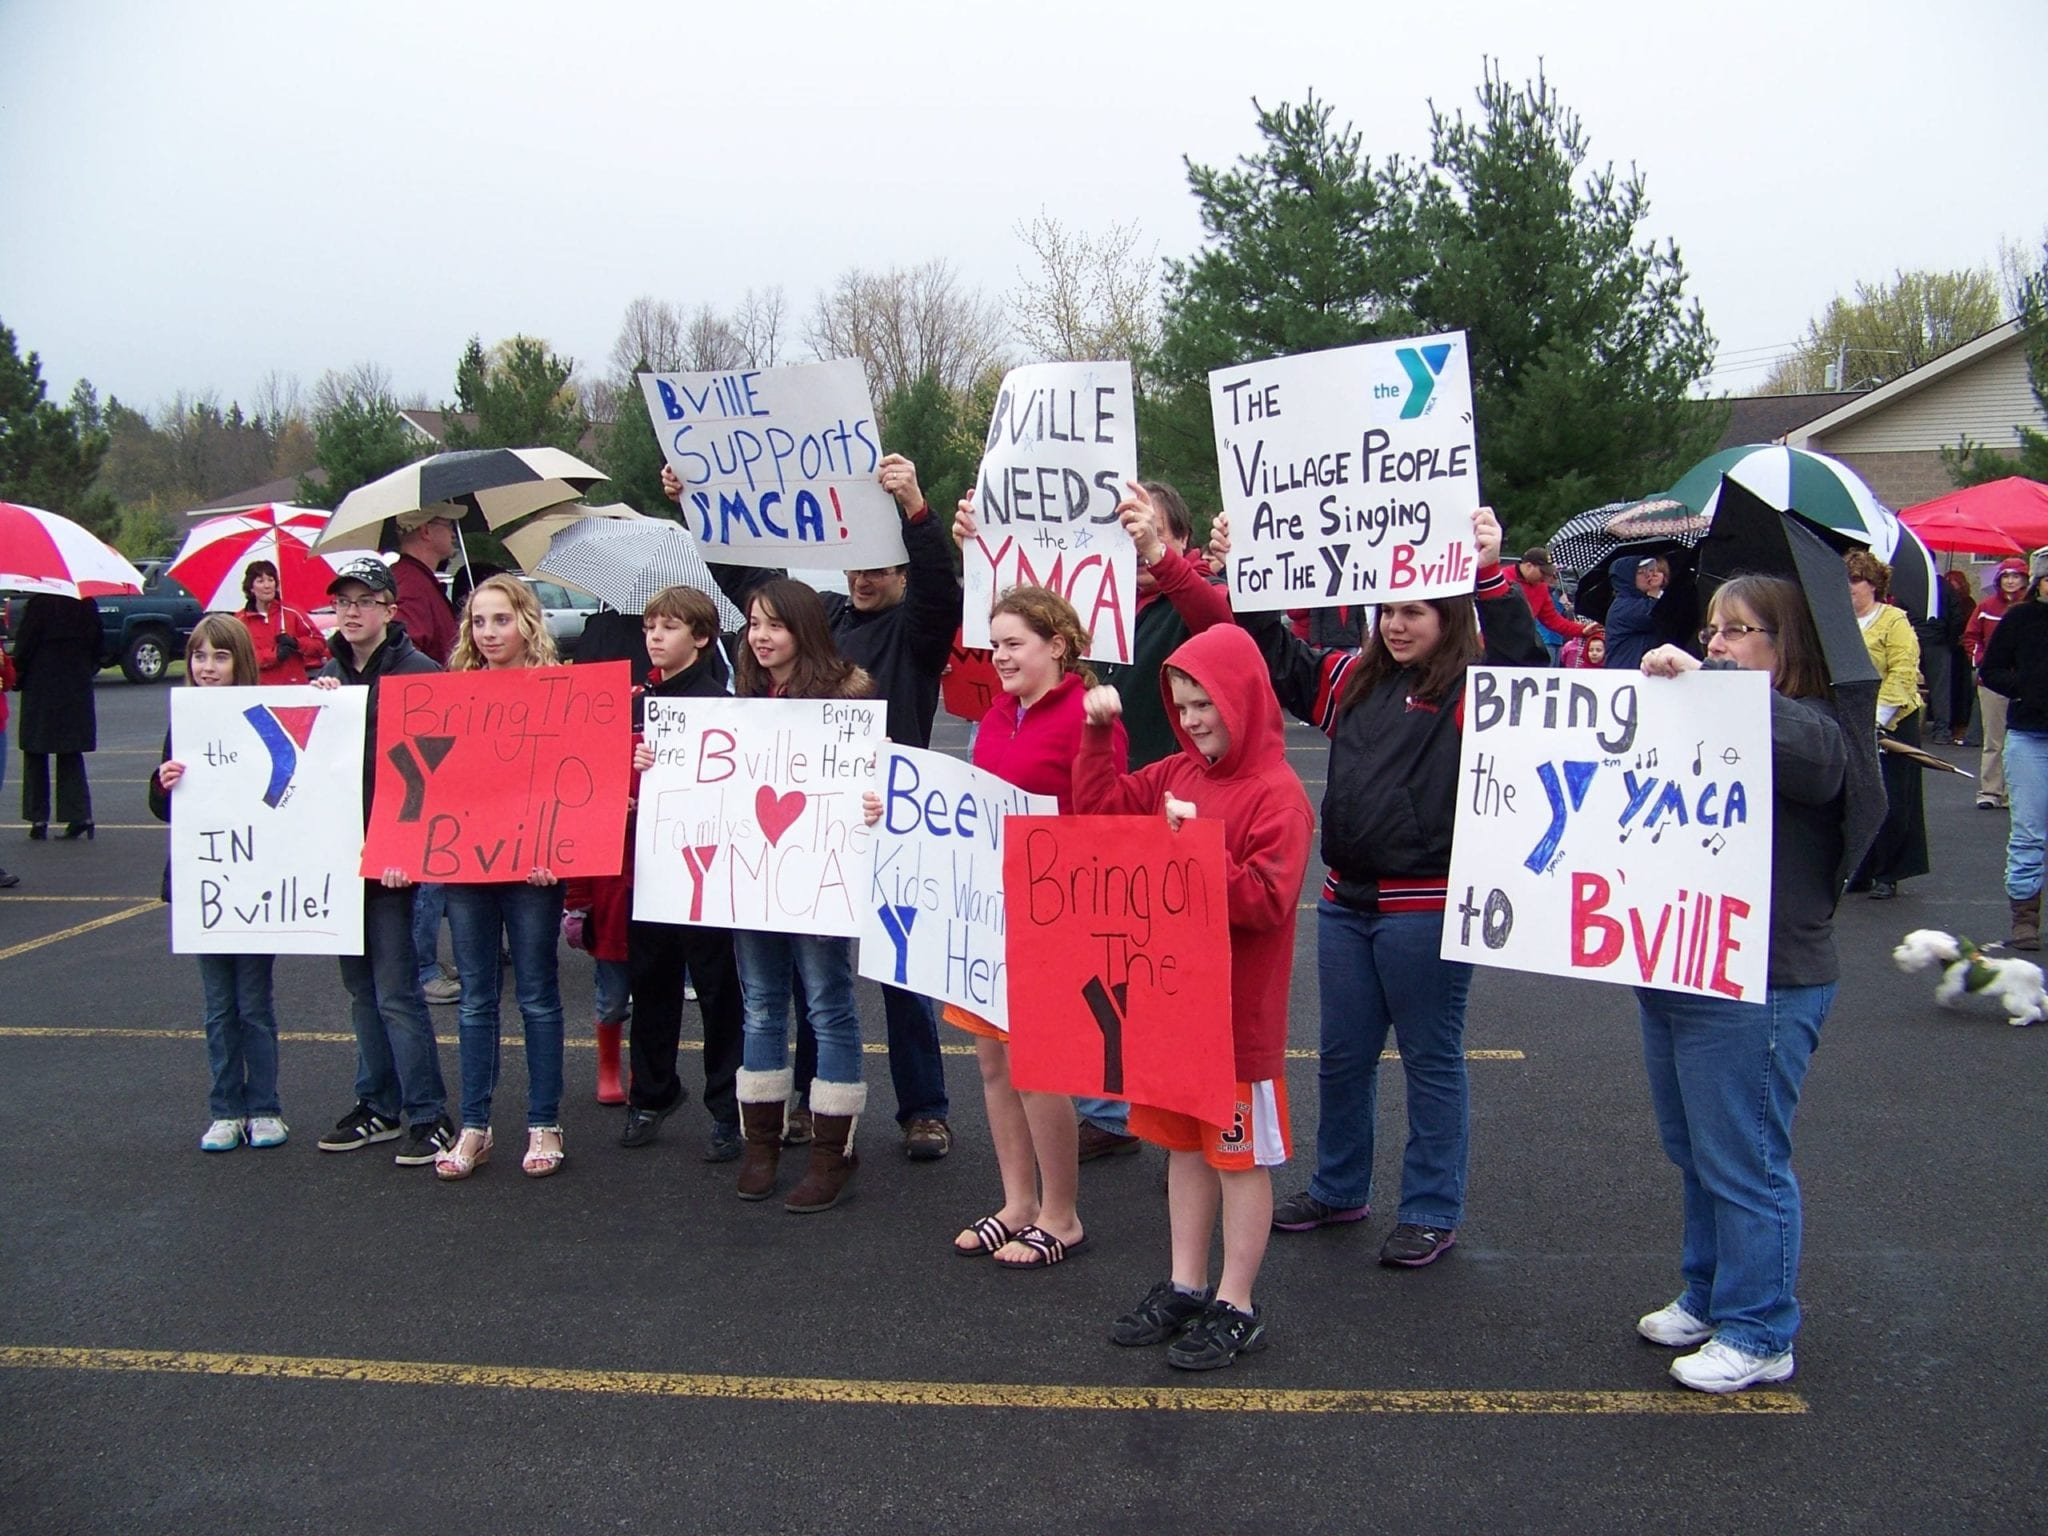 B'ville shows support for Y in village